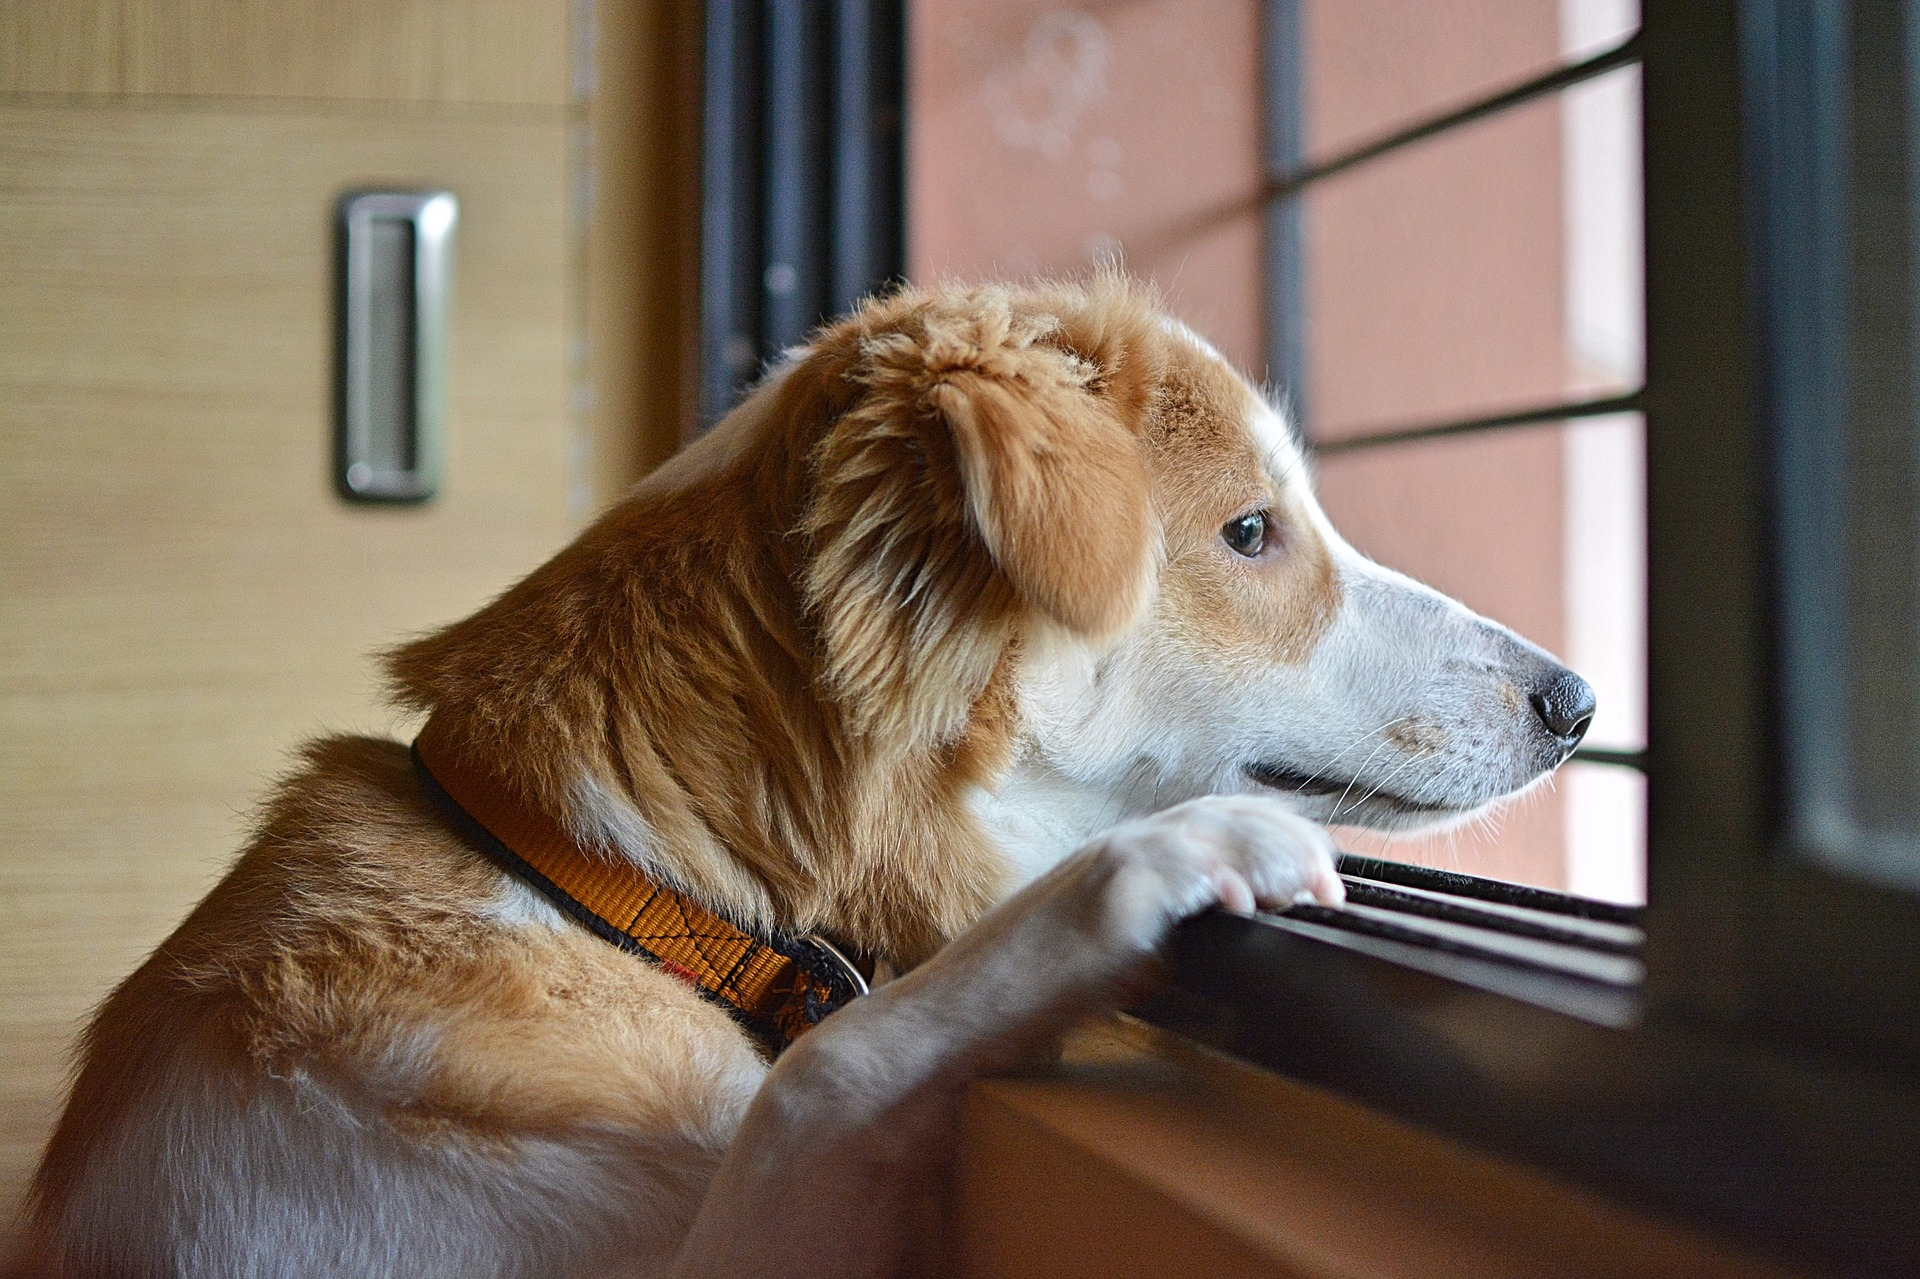 Sad Dog Looking Out Window, Separation Anxiety